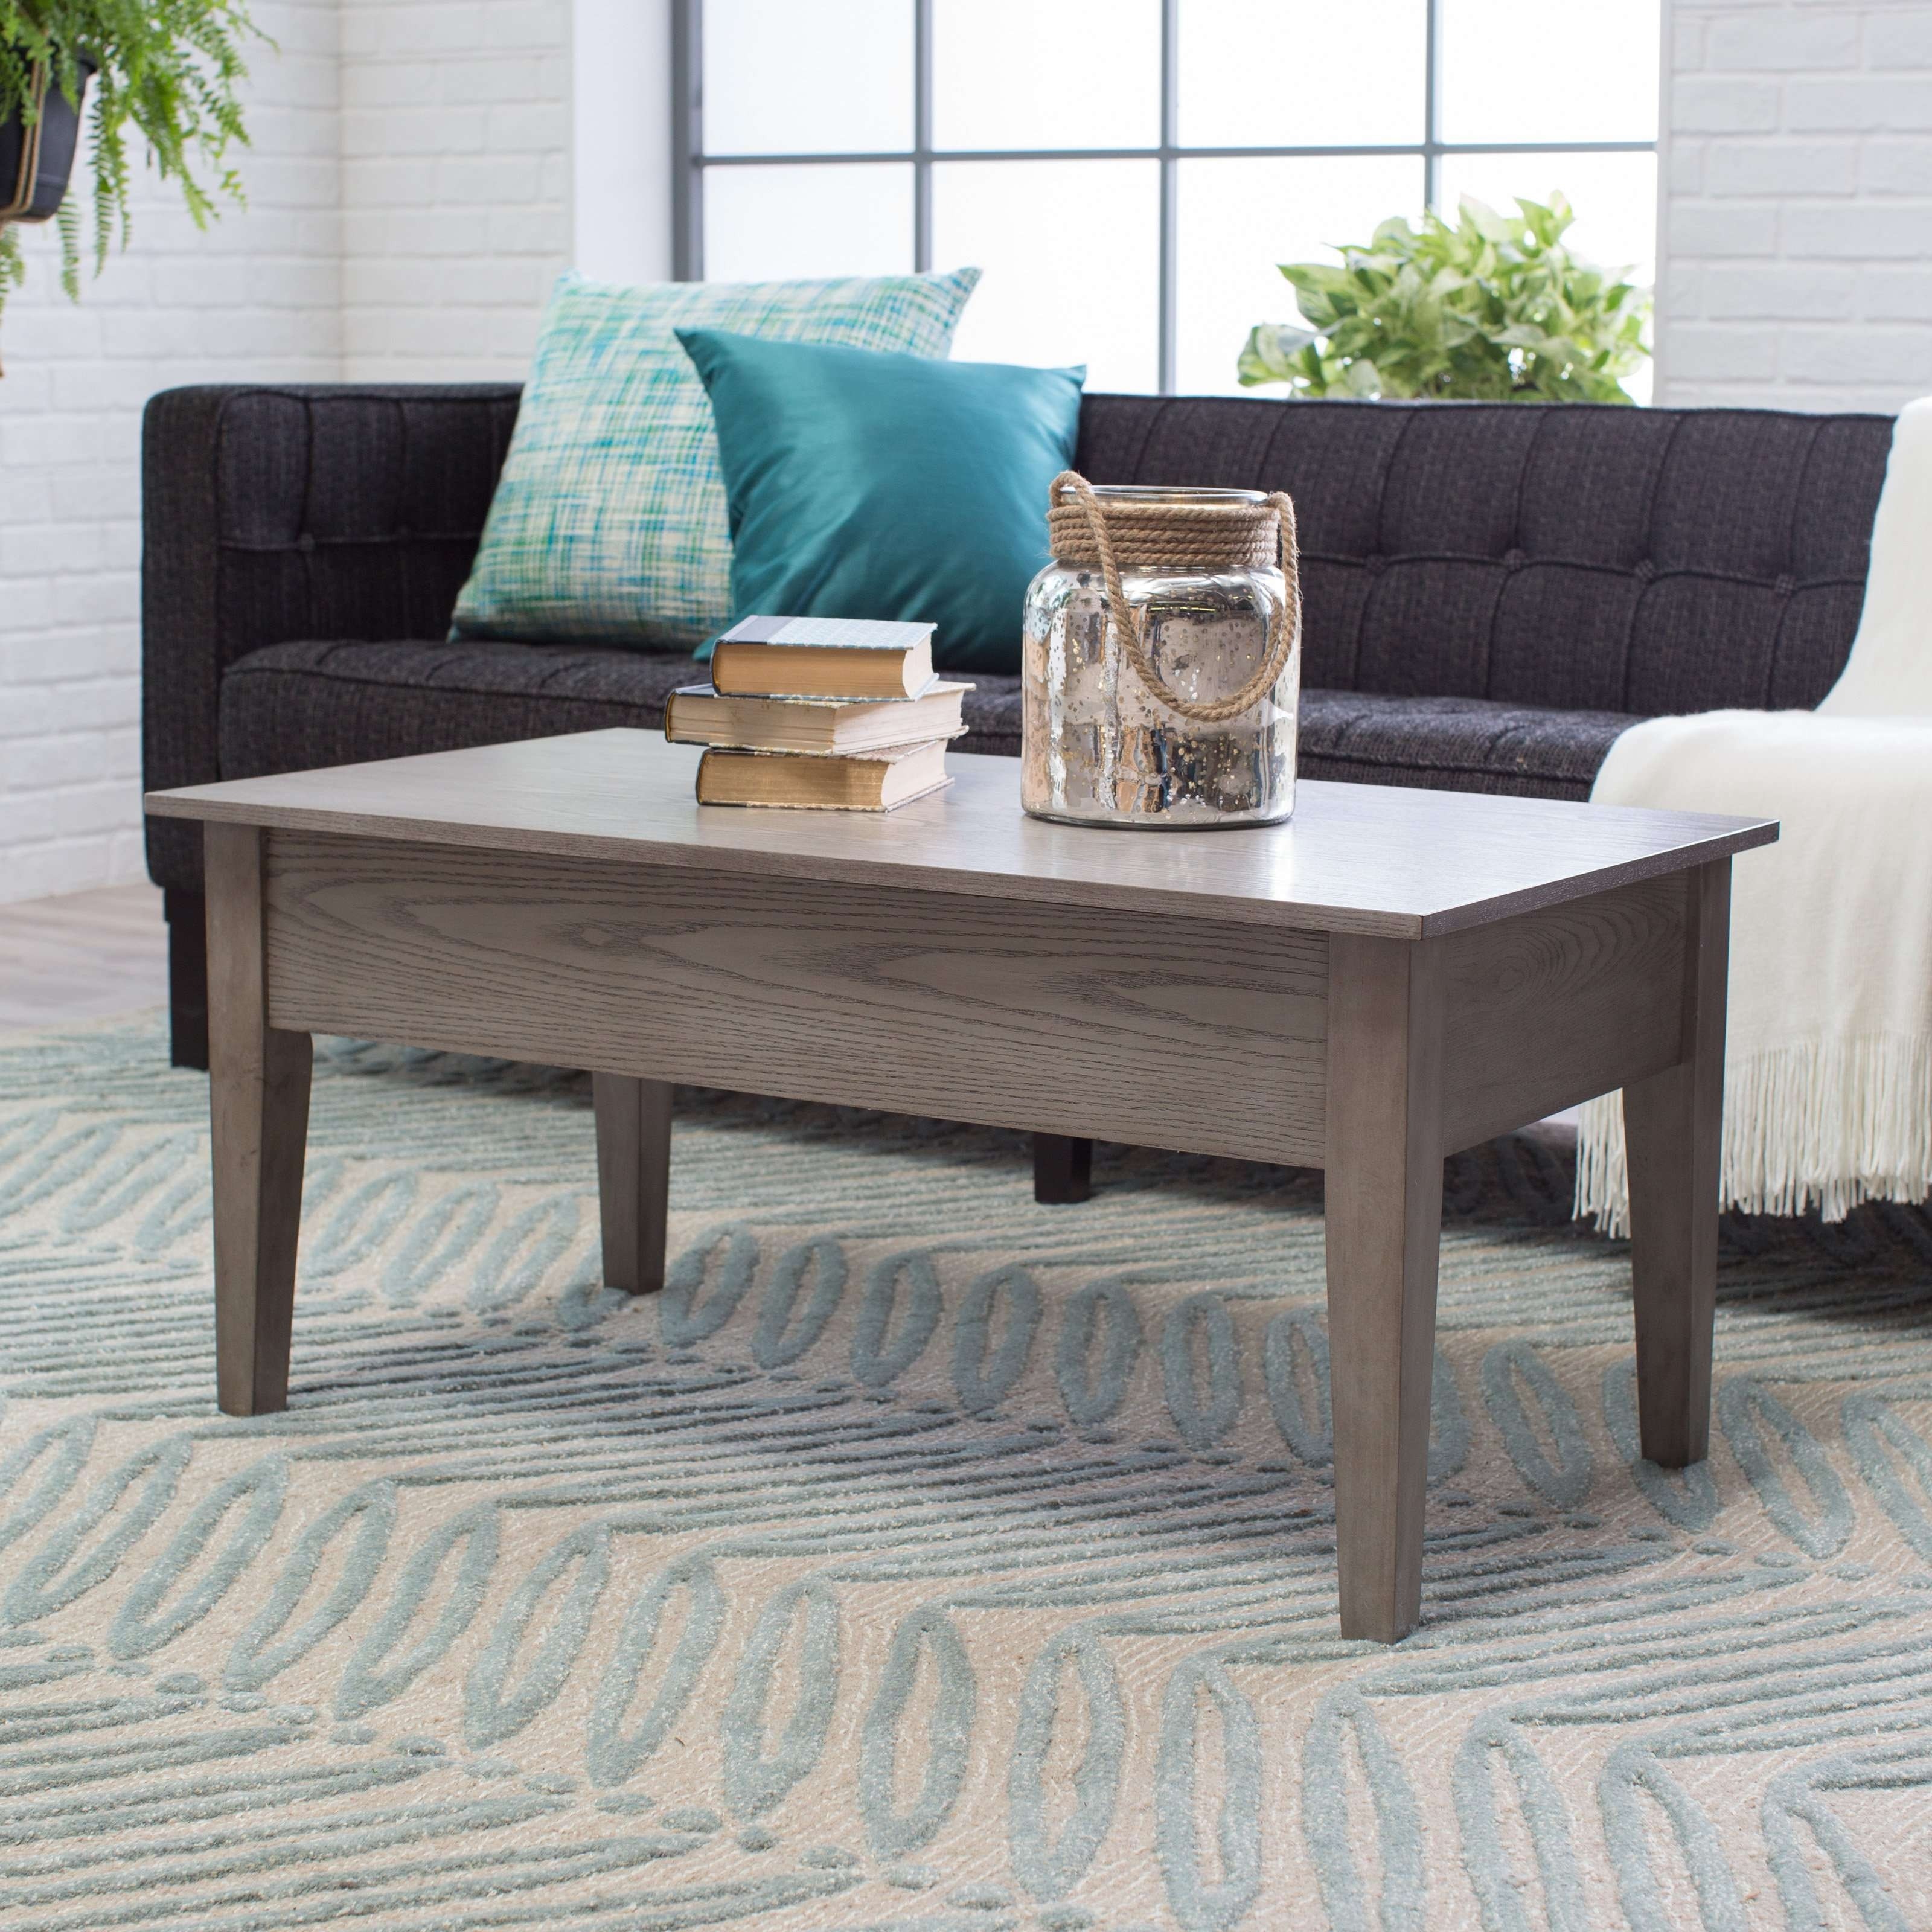 Turner Lift Top Coffee Table – Gray (View 18 of 20)